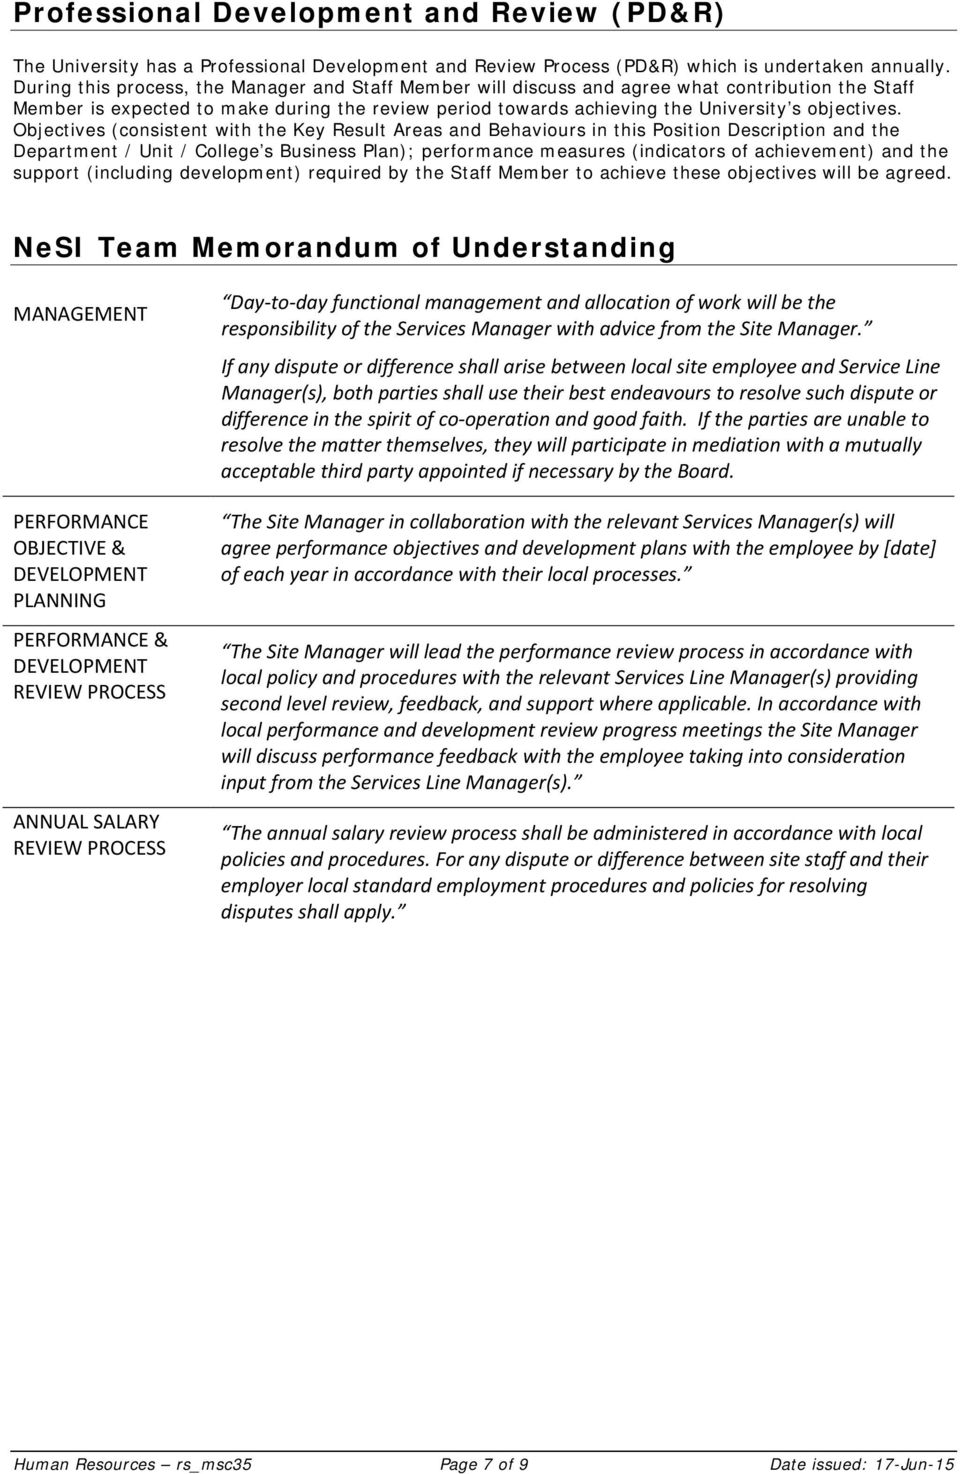 Objectives (consistent with the Key Result Areas and Behaviours in this Position Description and the Department / Unit / College s Business Plan); performance measures (indicators of achievement) and